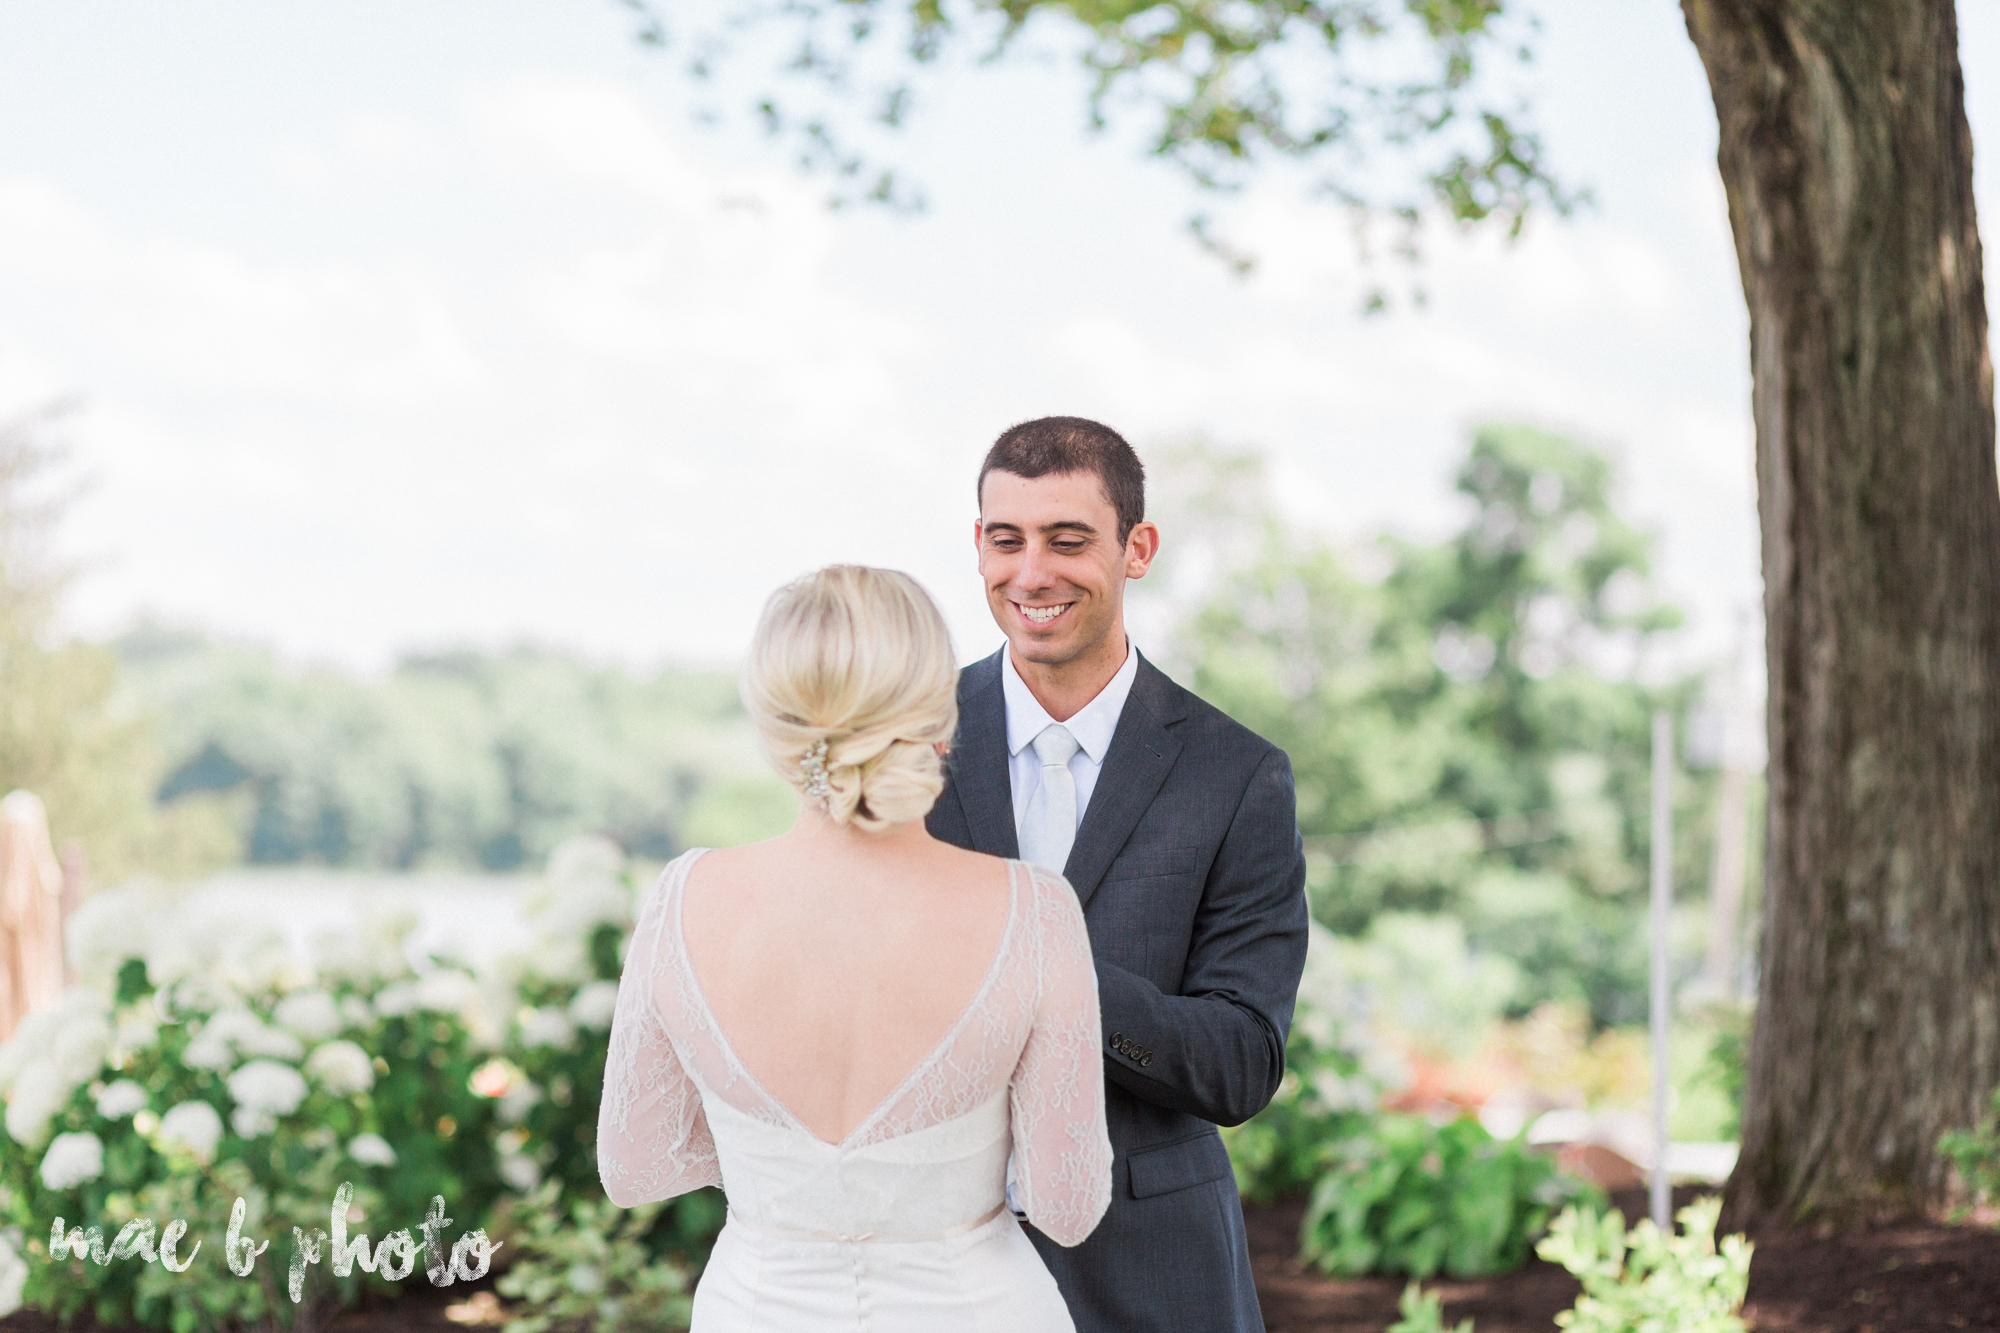 emily and michael's industrial chic summer country club wedding at the lake club in poland ohio photographed by cleveland wedding photographer mae b photo-11.jpg